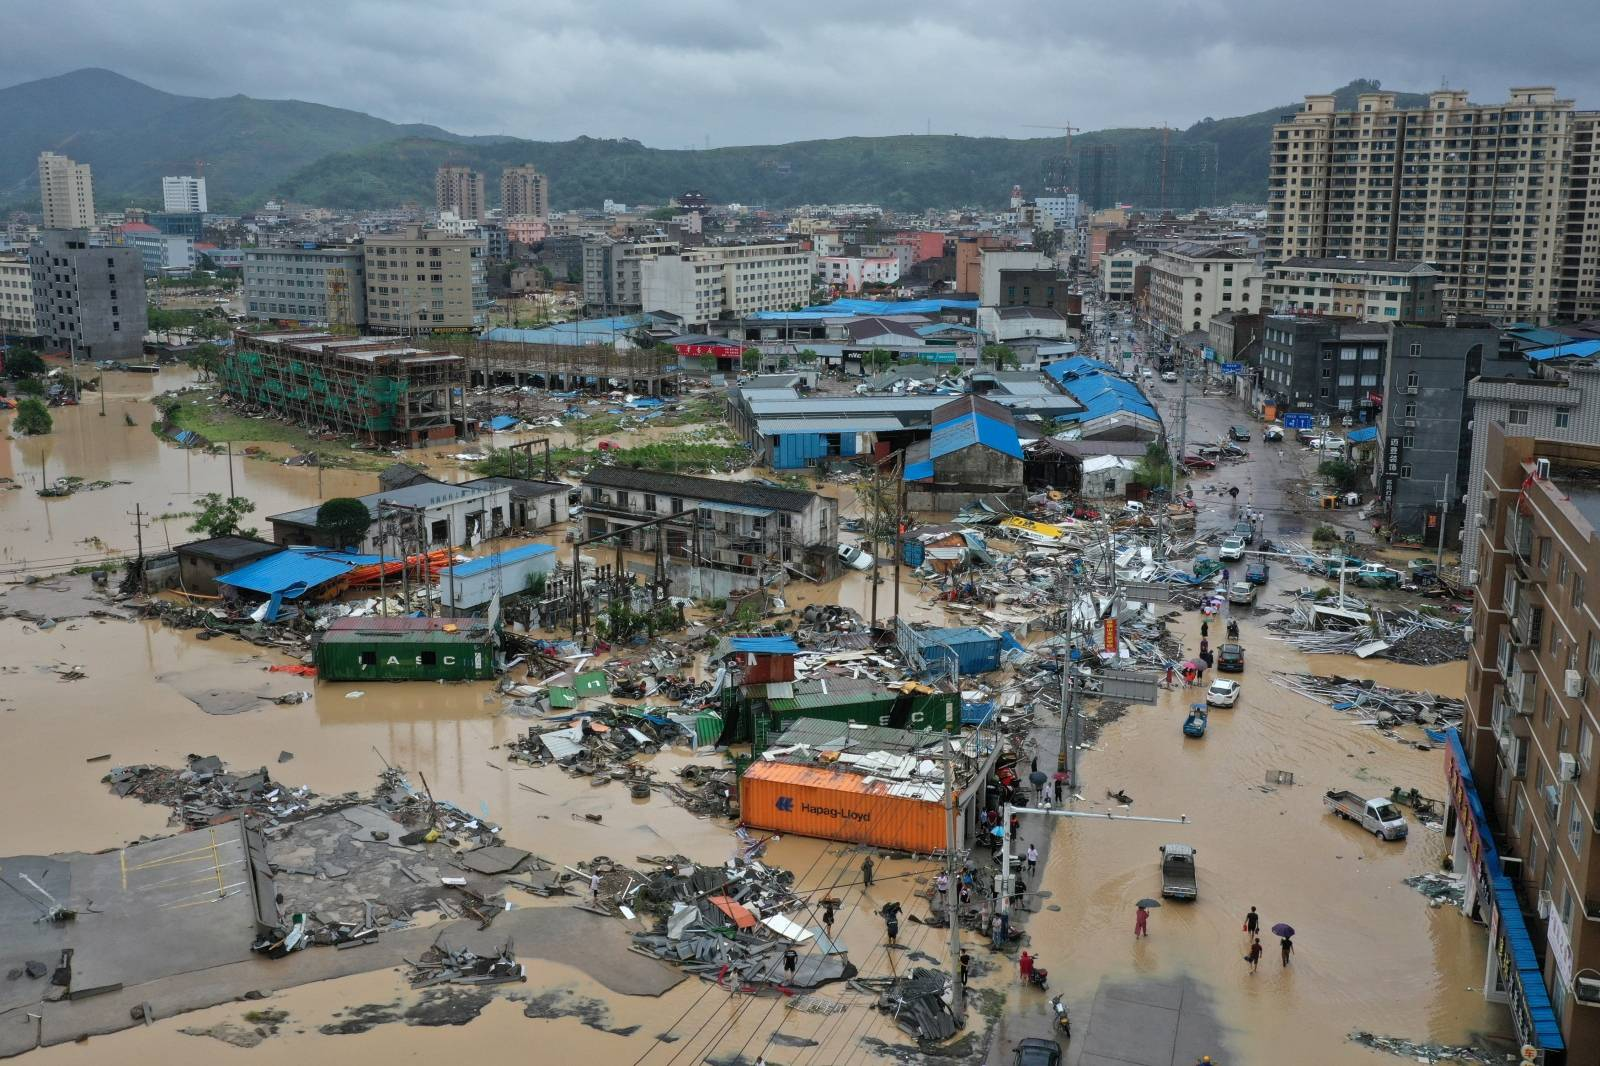 Dajing town is seen damaged and partially submerged in floodwaters in the aftermath of Typhoon Lekima in Leqing